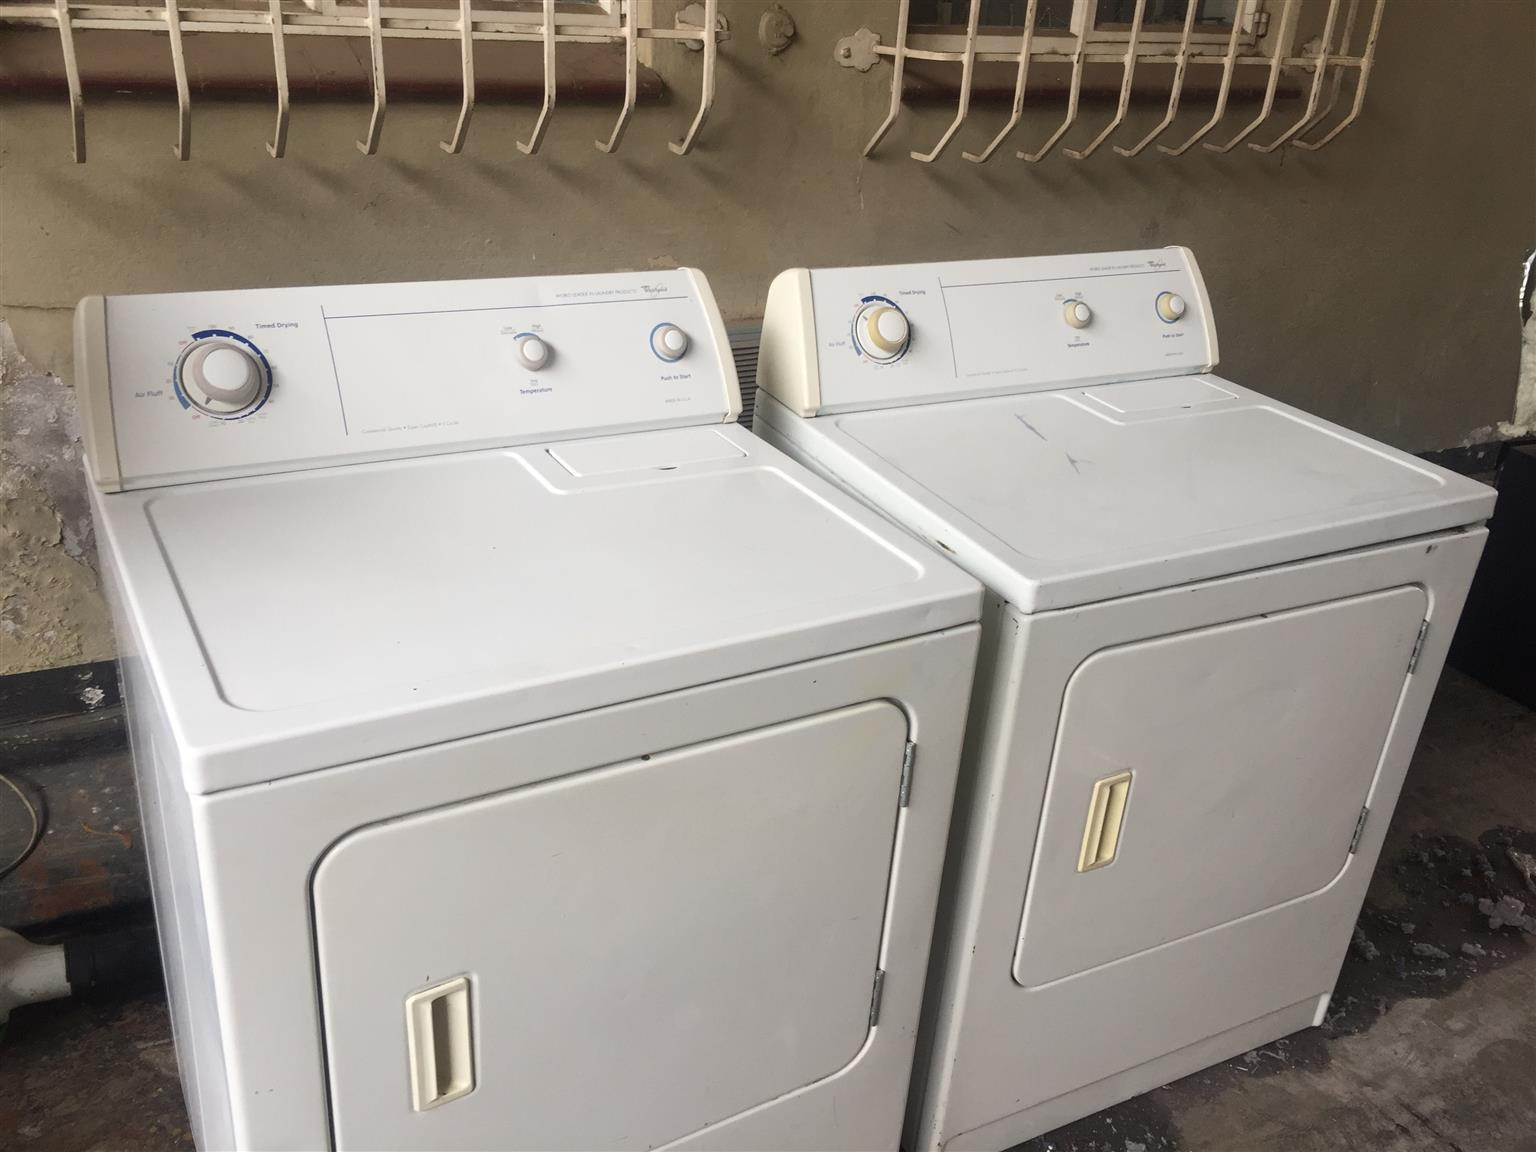 2 Fully Serviced Whirlpool Tumble Dryers